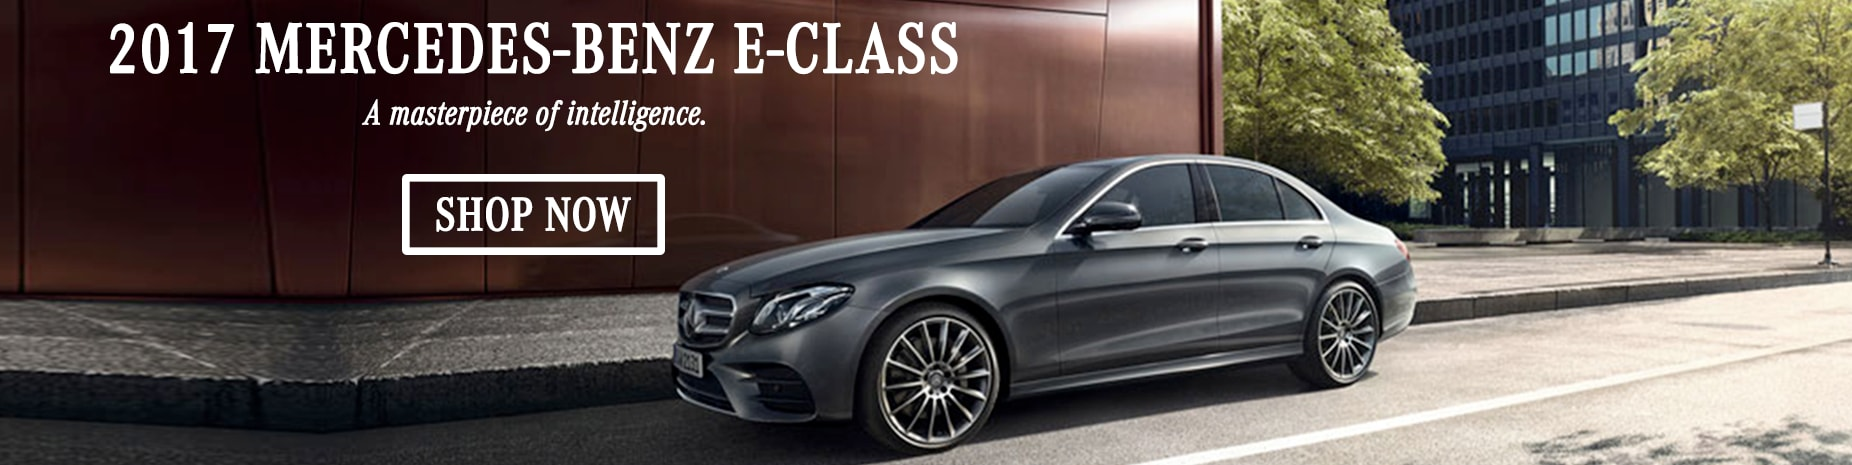 Plaza motor company vehicles for sale in creve coeur mo for St charles mercedes benz dealership